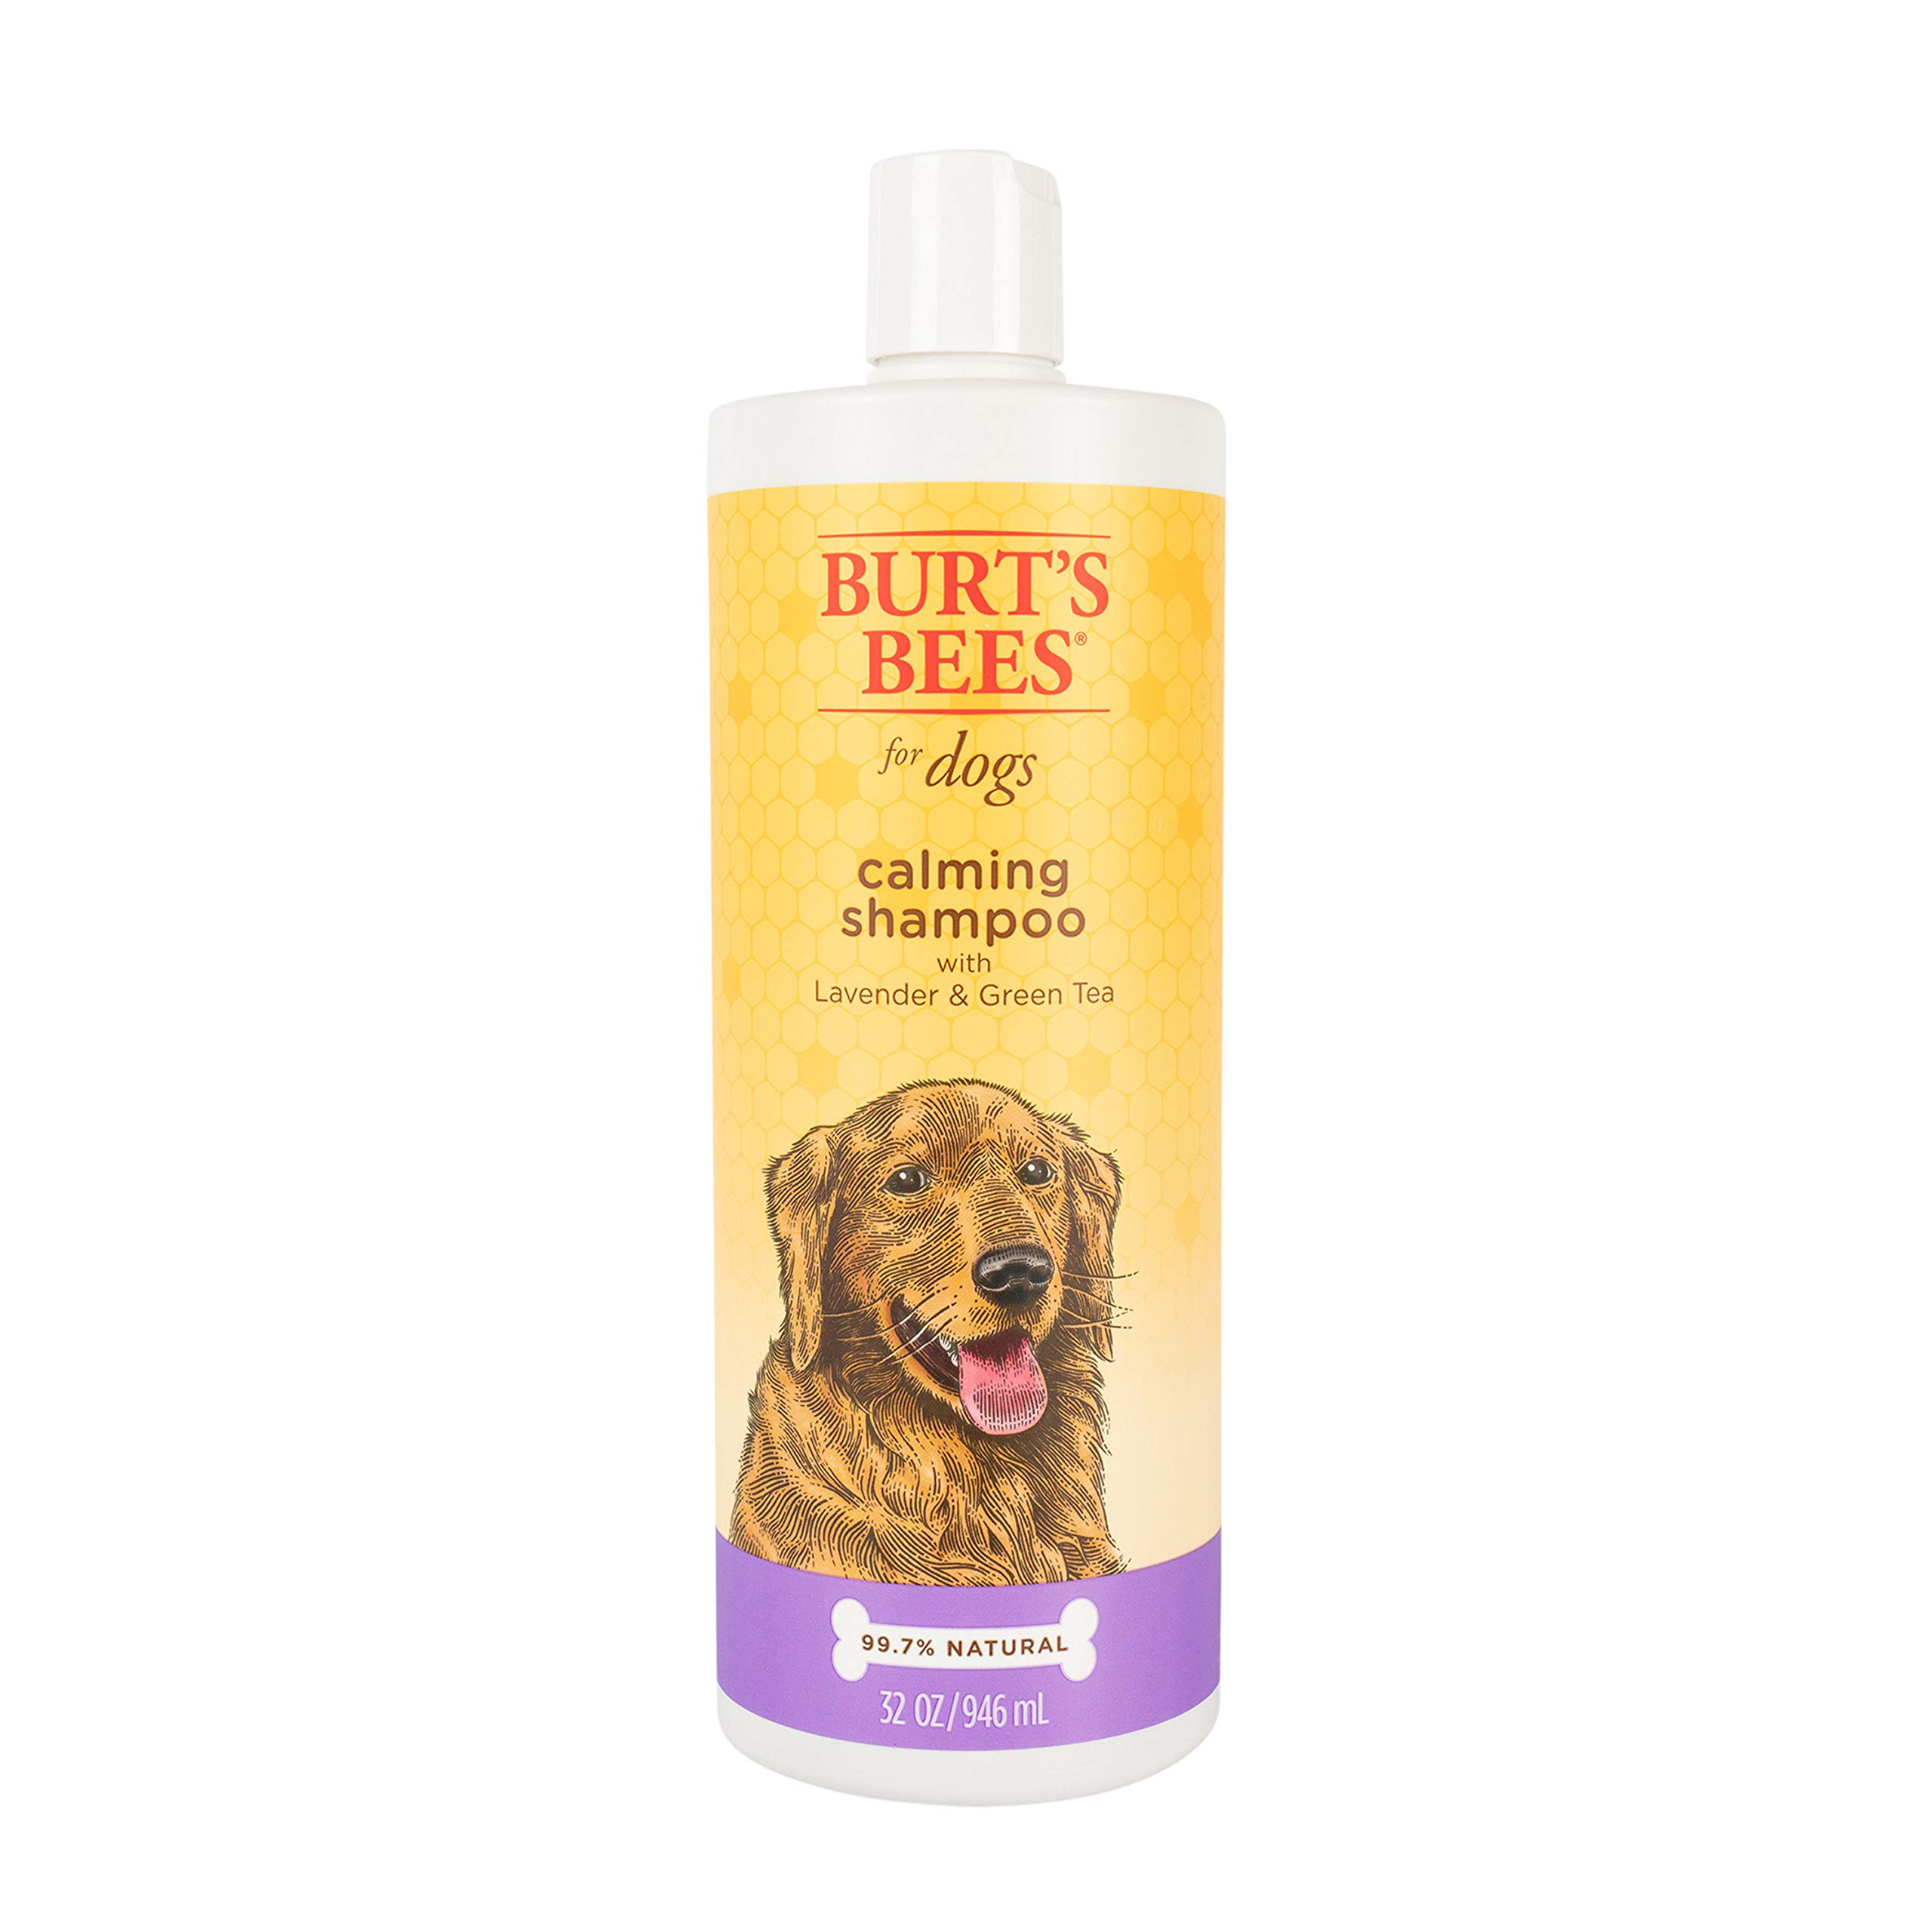 Burt's Bees All Natural Calming Shampoo for Dogs   Soothes, Calms & Revitalizes   Made with Lavender and Green Tea, 32 Ounces